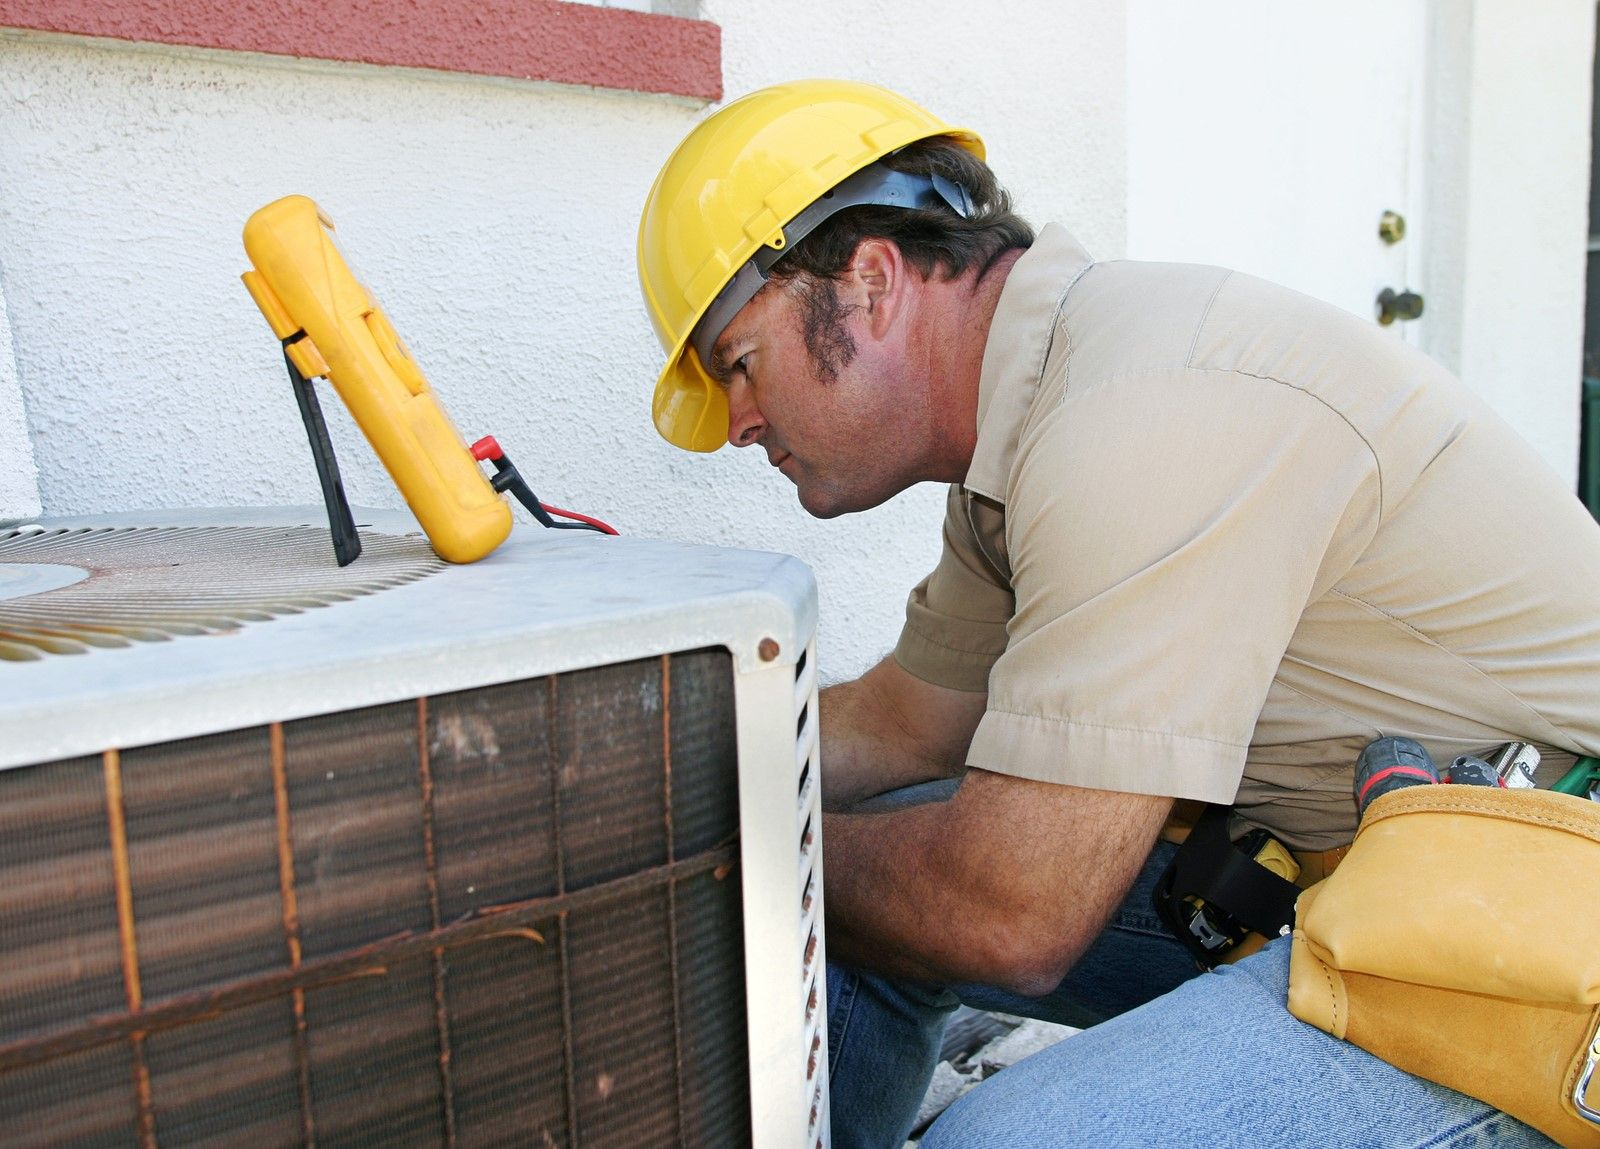 Bonney Lake Air Conditioning Repair is pleased to offer